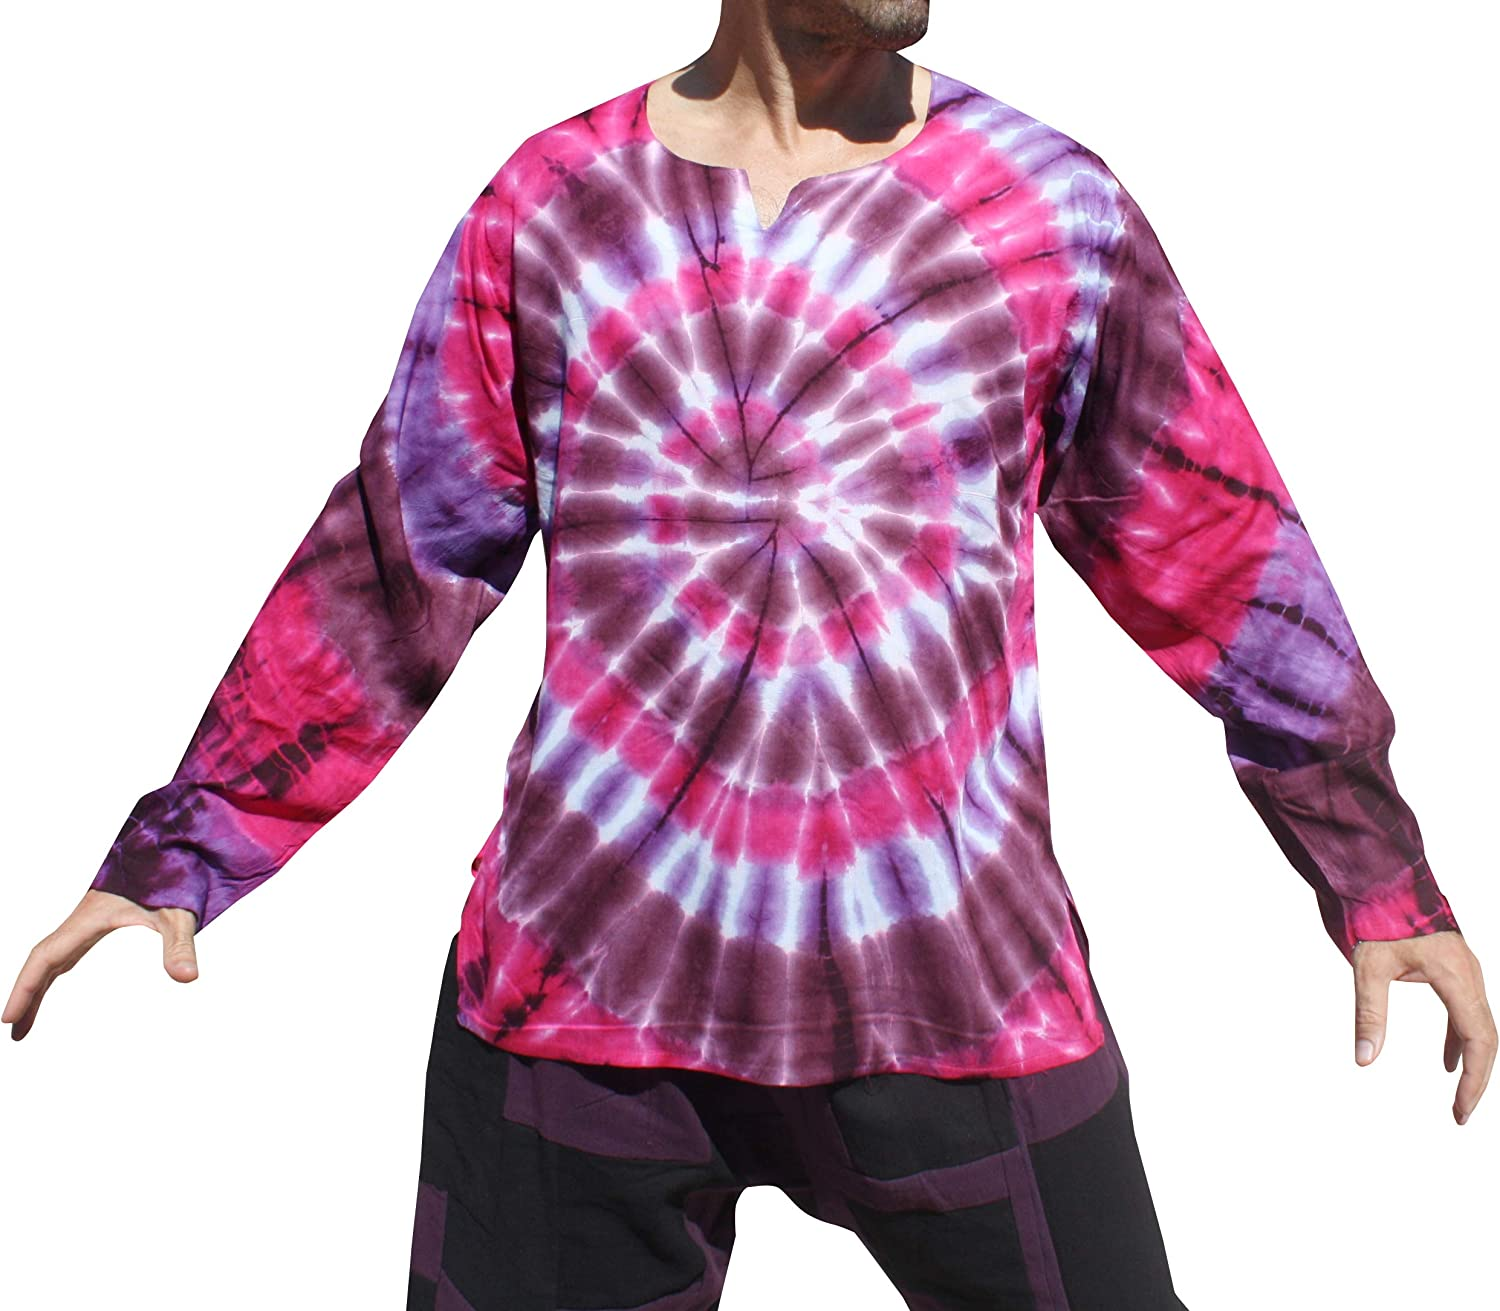 Full Funk Open Collar Long Sleeve Shirt in Light Summer Viscose Rayon Tie Dyed